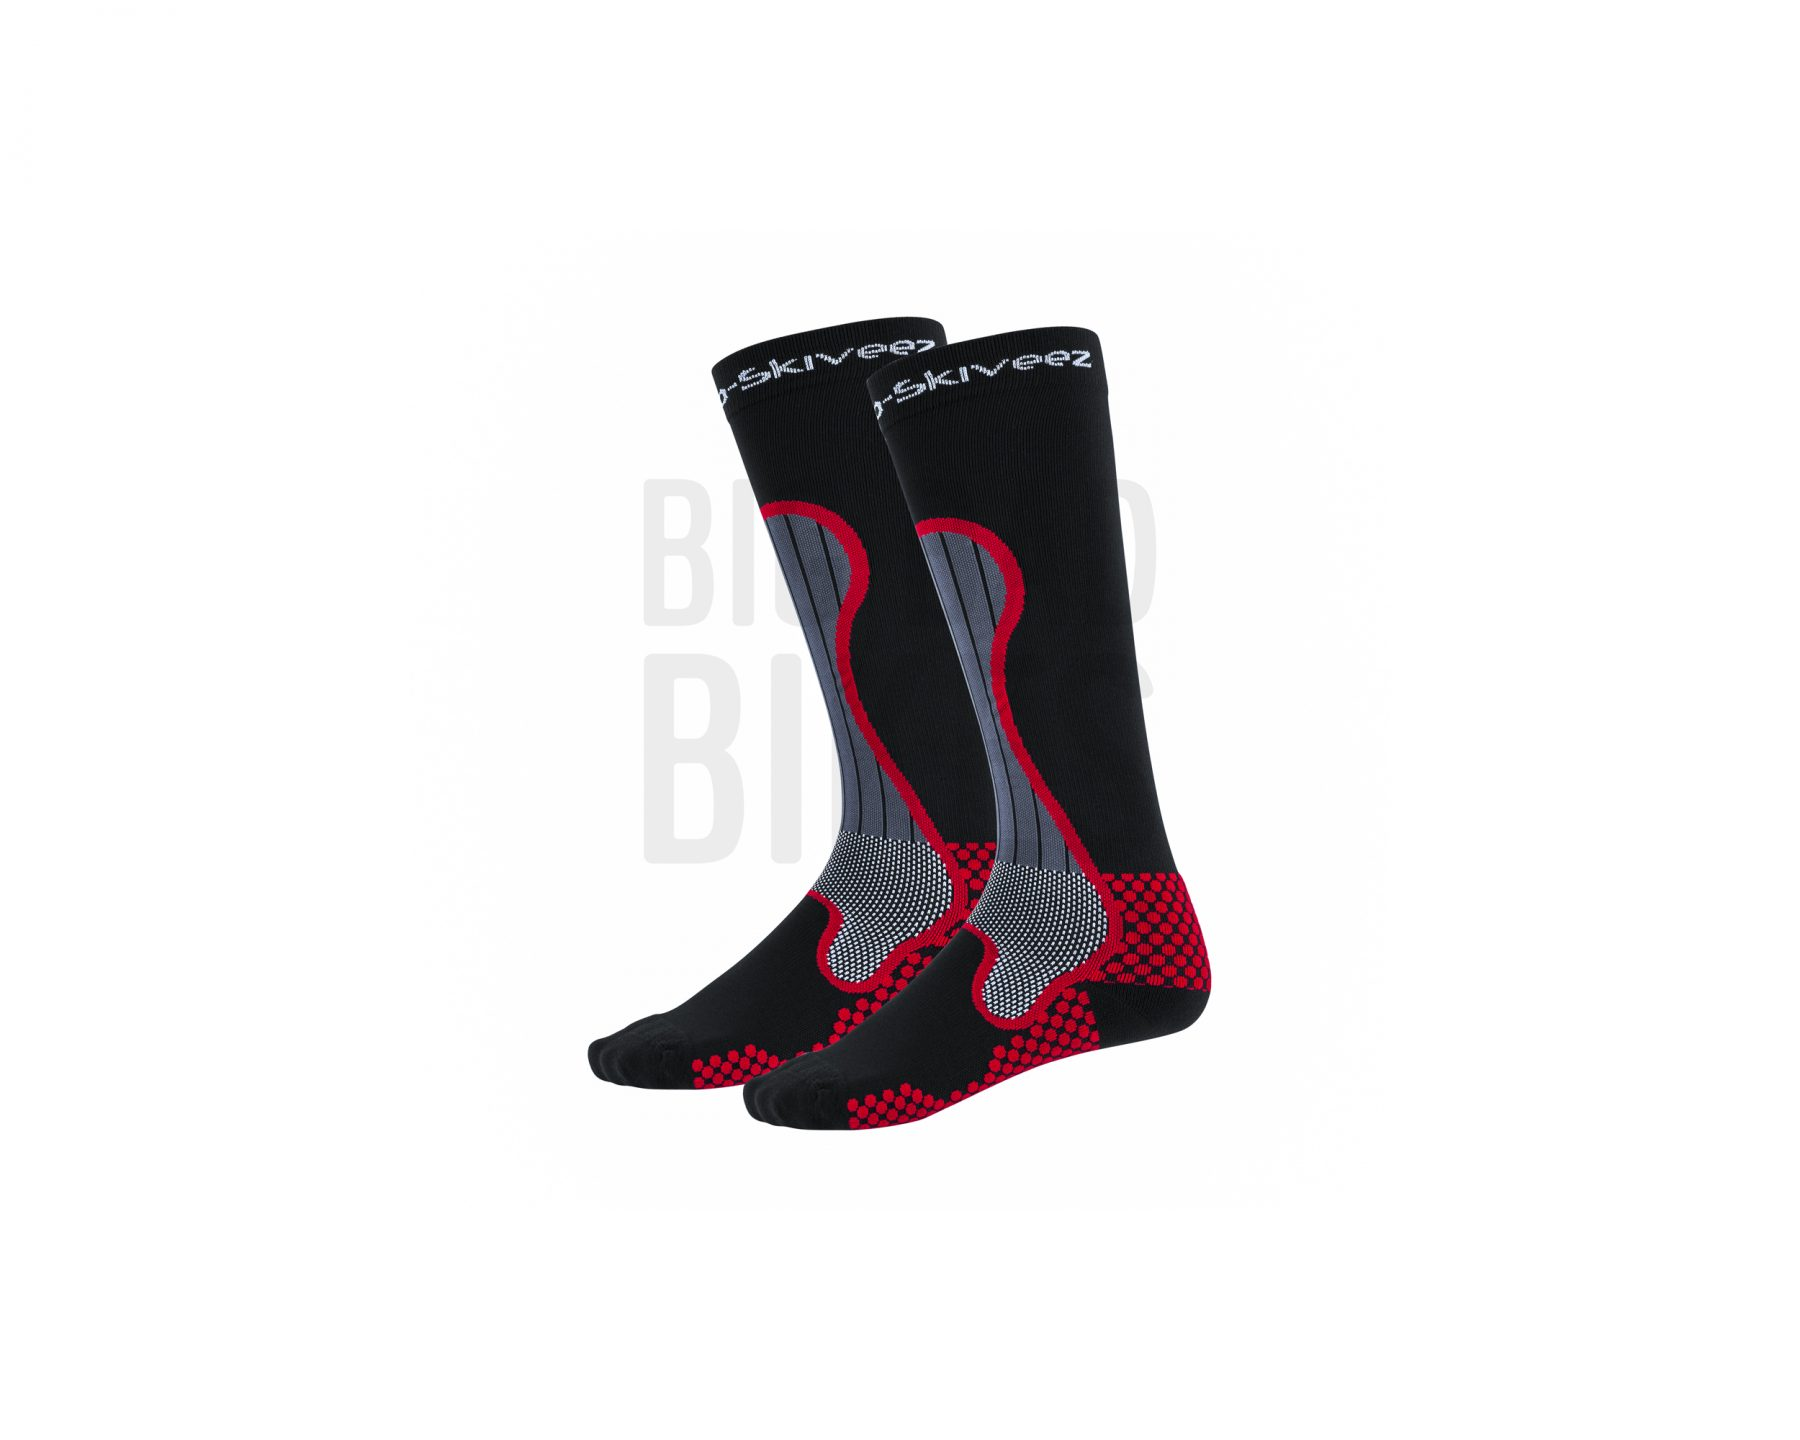 Performance socks pair